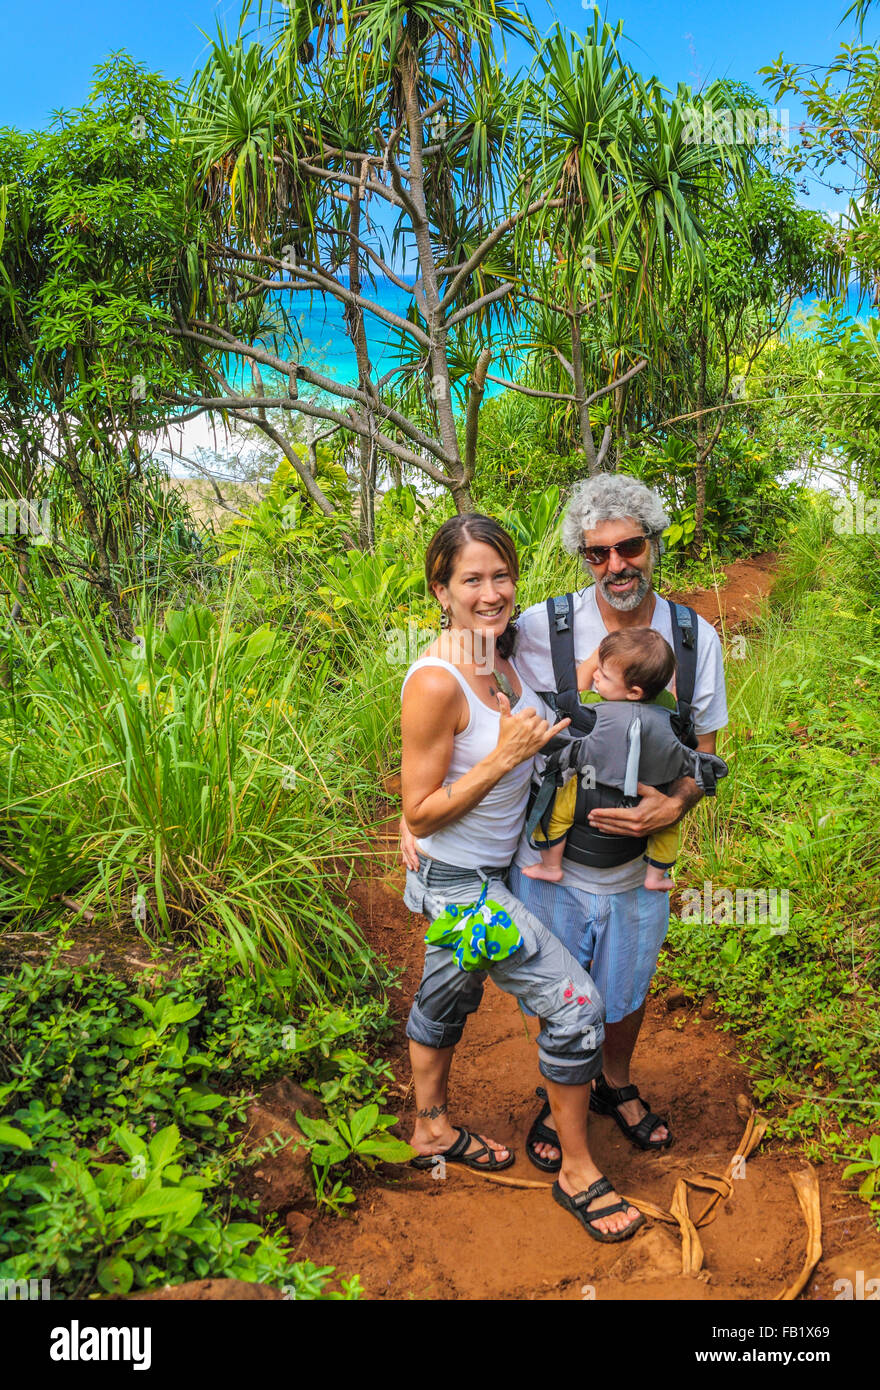 Couple with baby on the Kalalau Trail, with Hanakapiai Beach in background Stock Photo